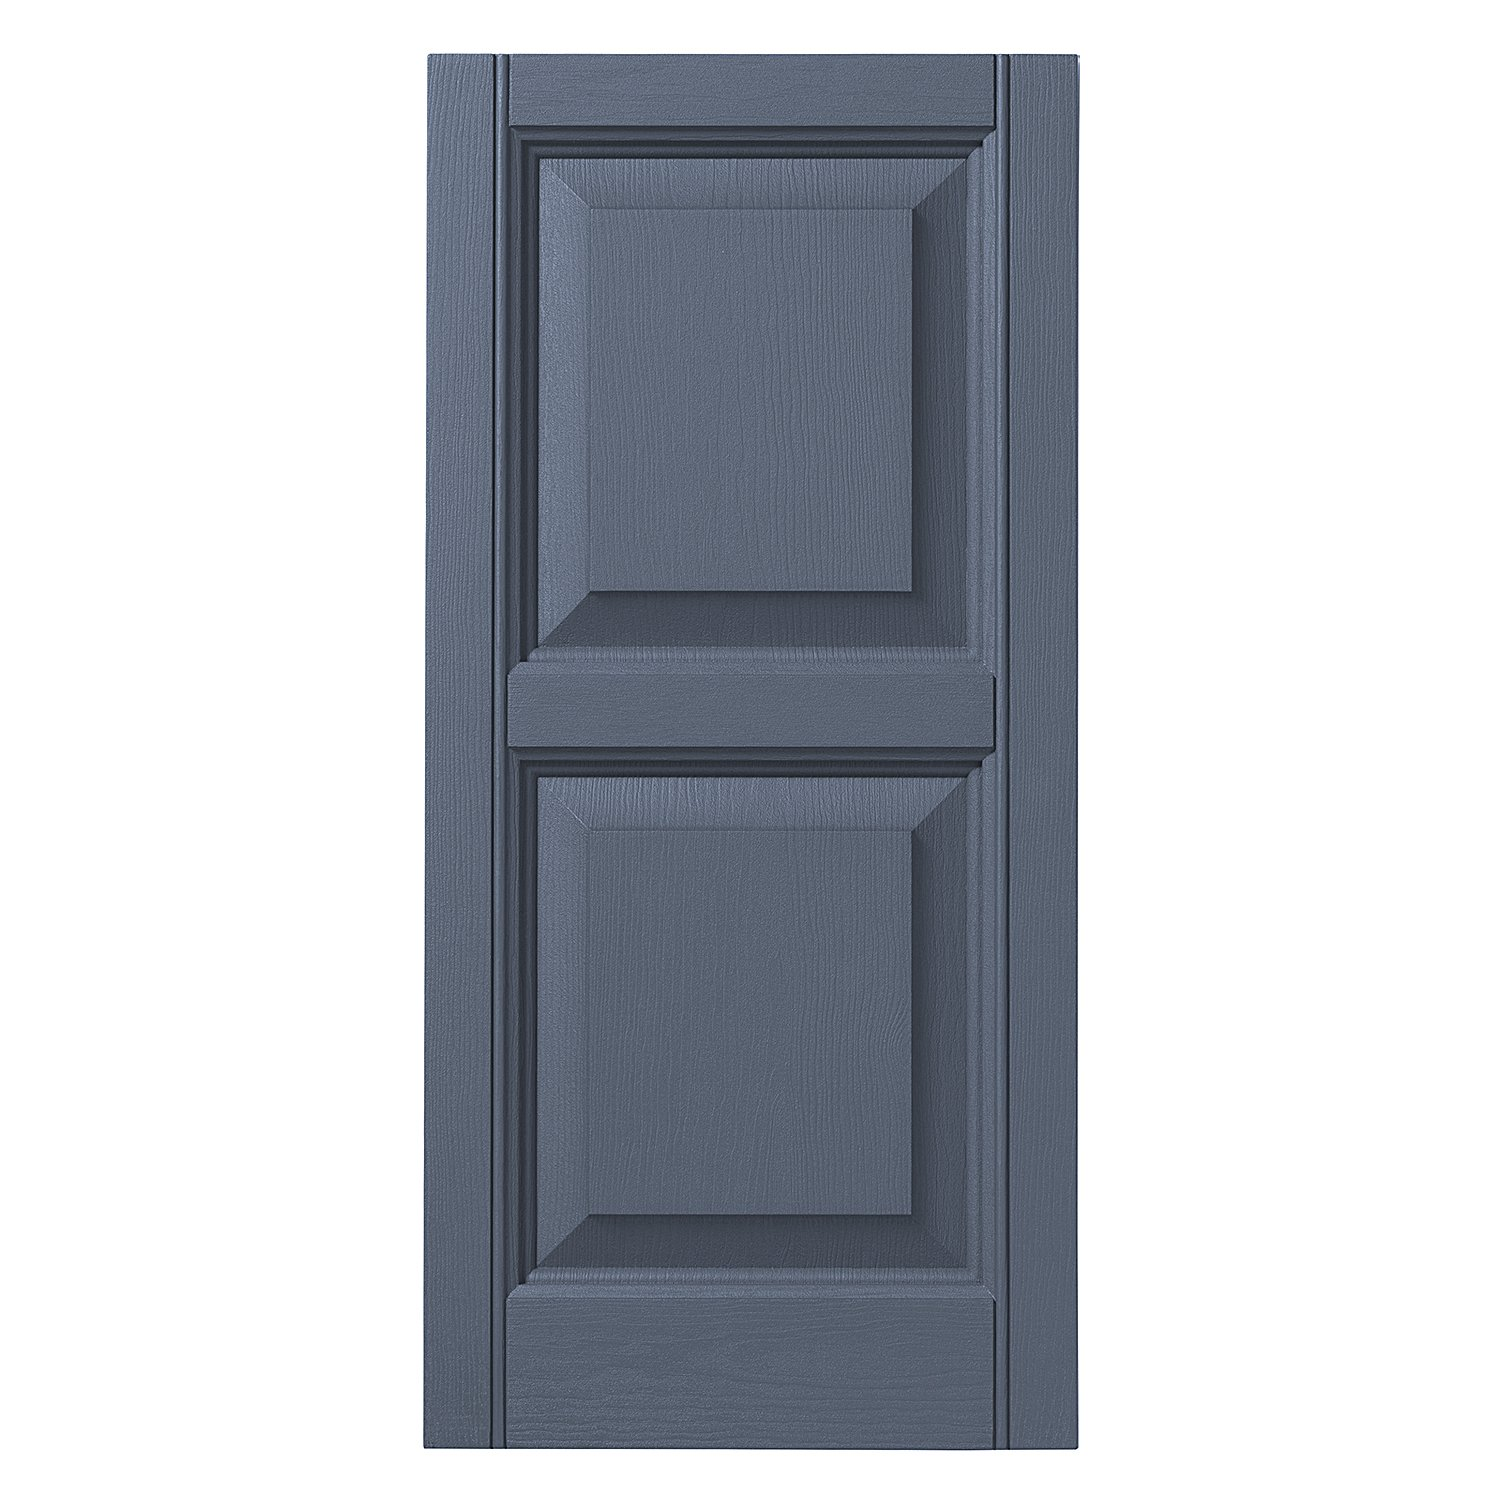 Ply Gem Shutters and Accents VINRP1543 41 Raised Panel Shutter, 15'', Blue